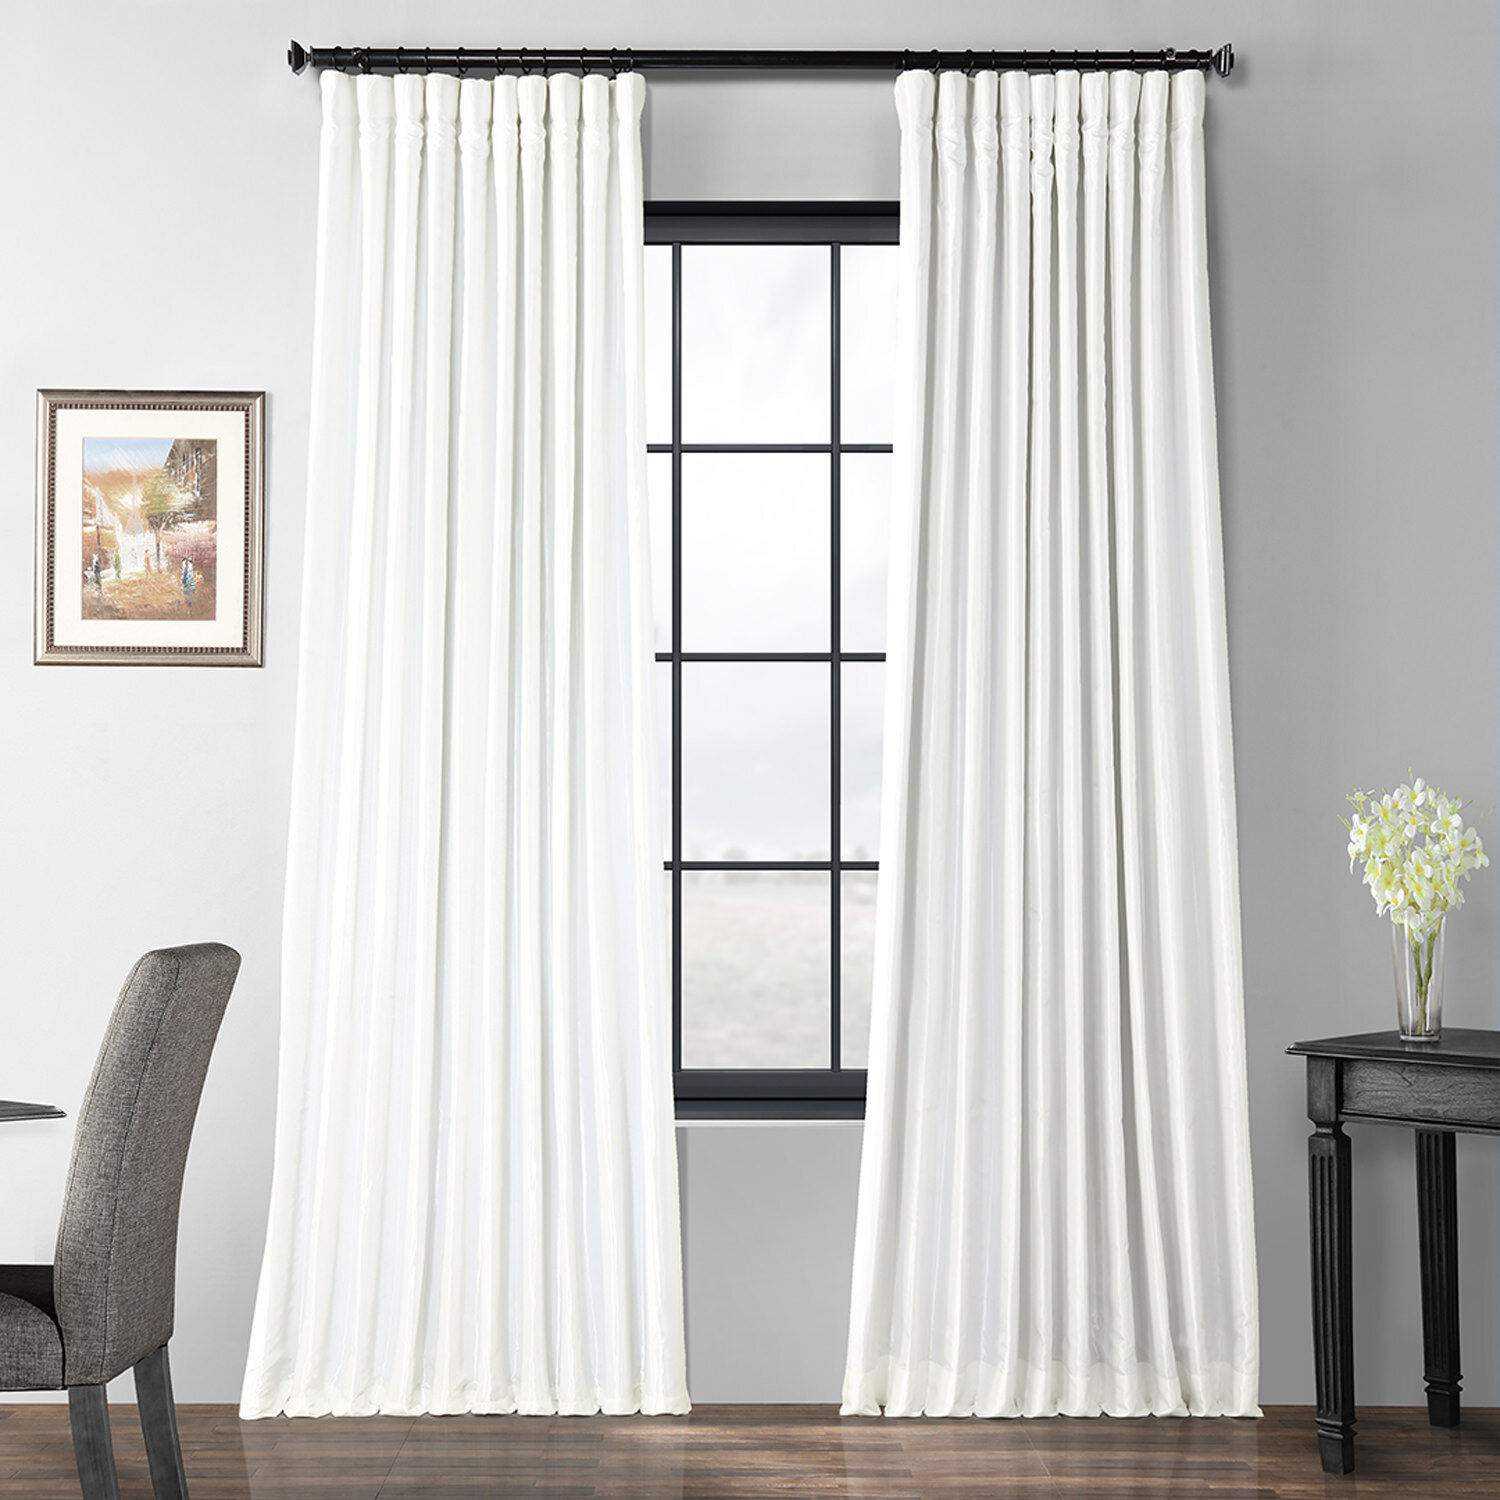 Faux Silk Extra Wide Taffeta Blackout Single Curtain Panel With Regard To Faux Silk Extra Wide Blackout Single Curtain Panels (View 5 of 20)